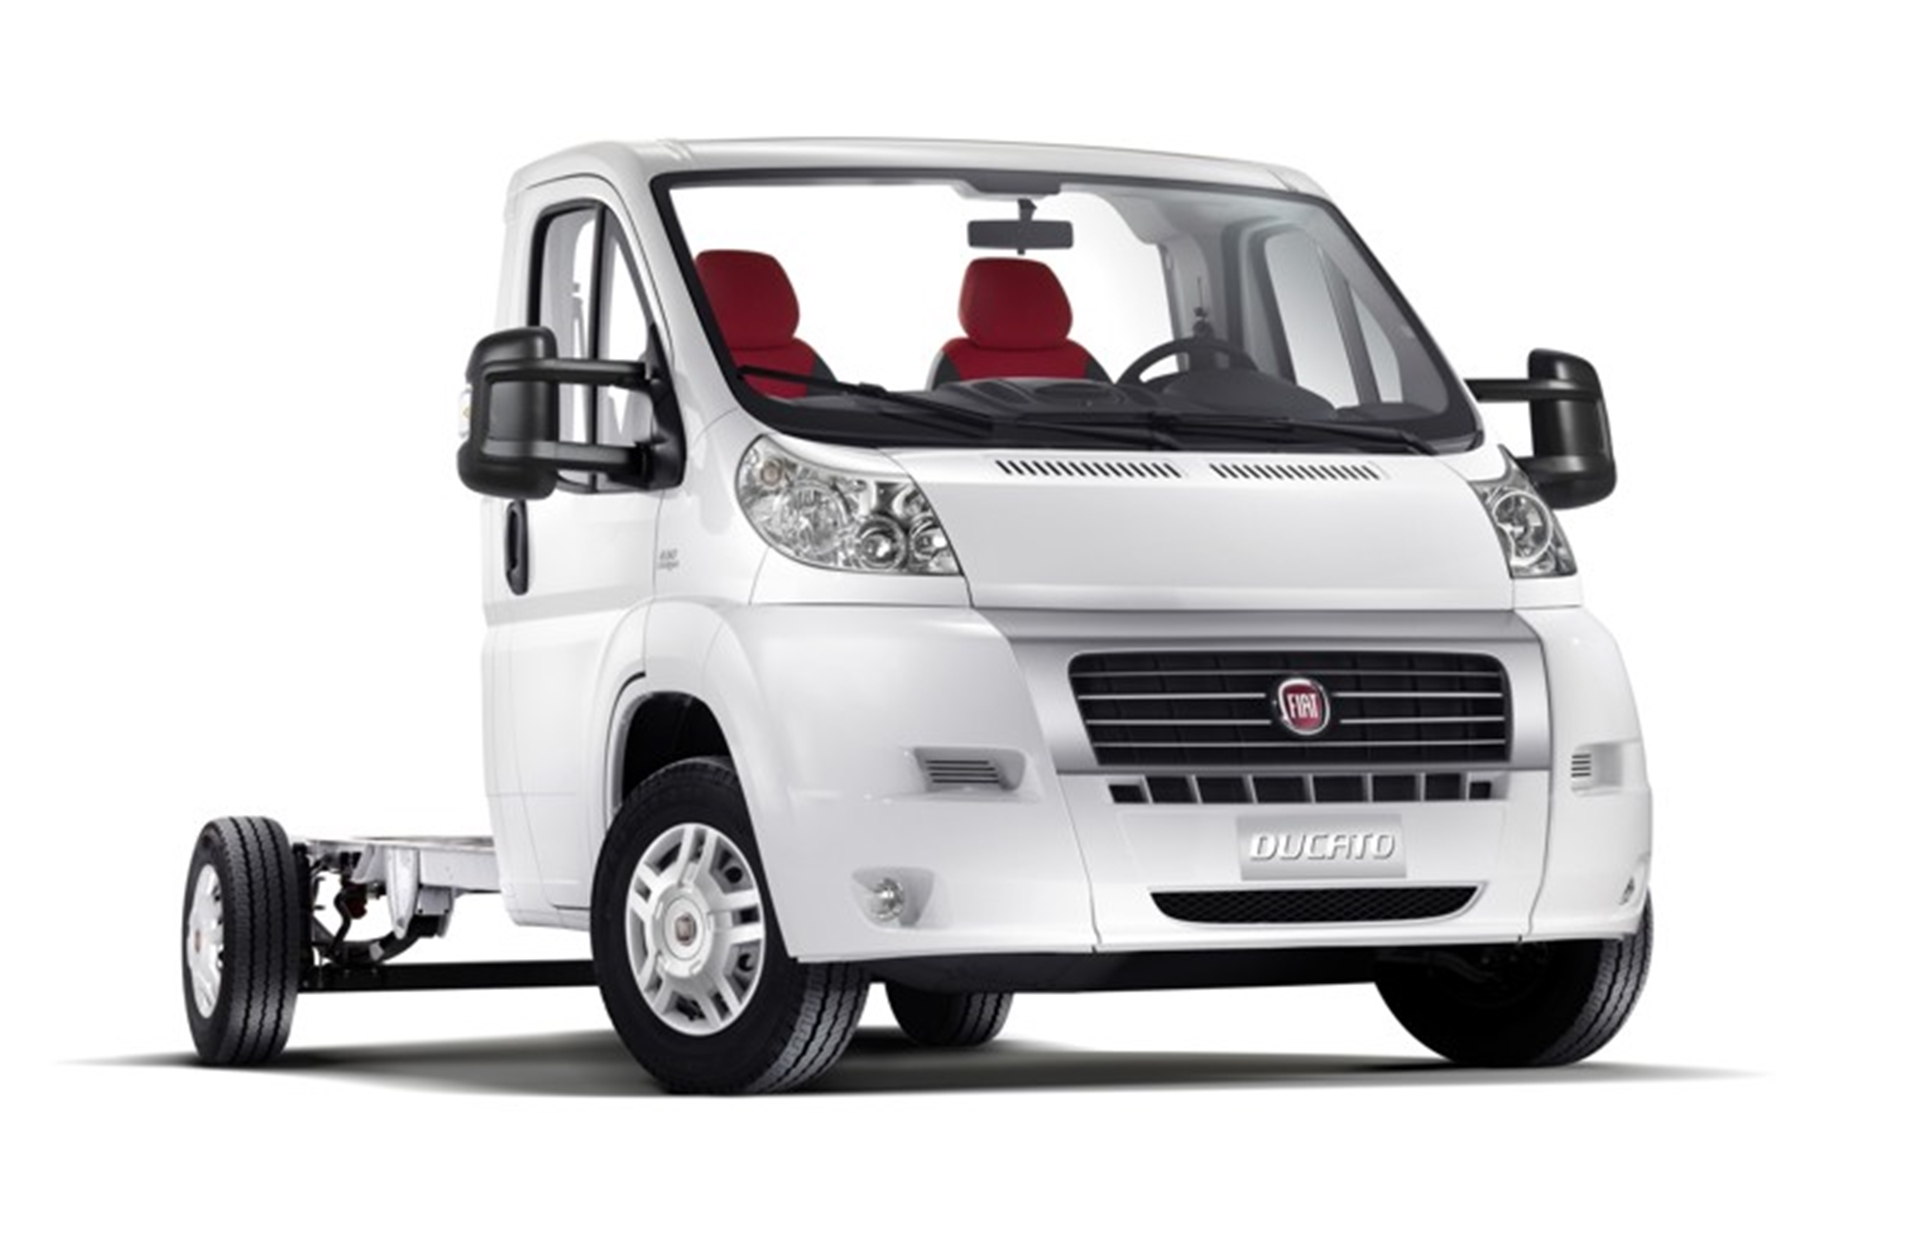 New fiat ducato to star at the motorhome caravan amp camping show 2012